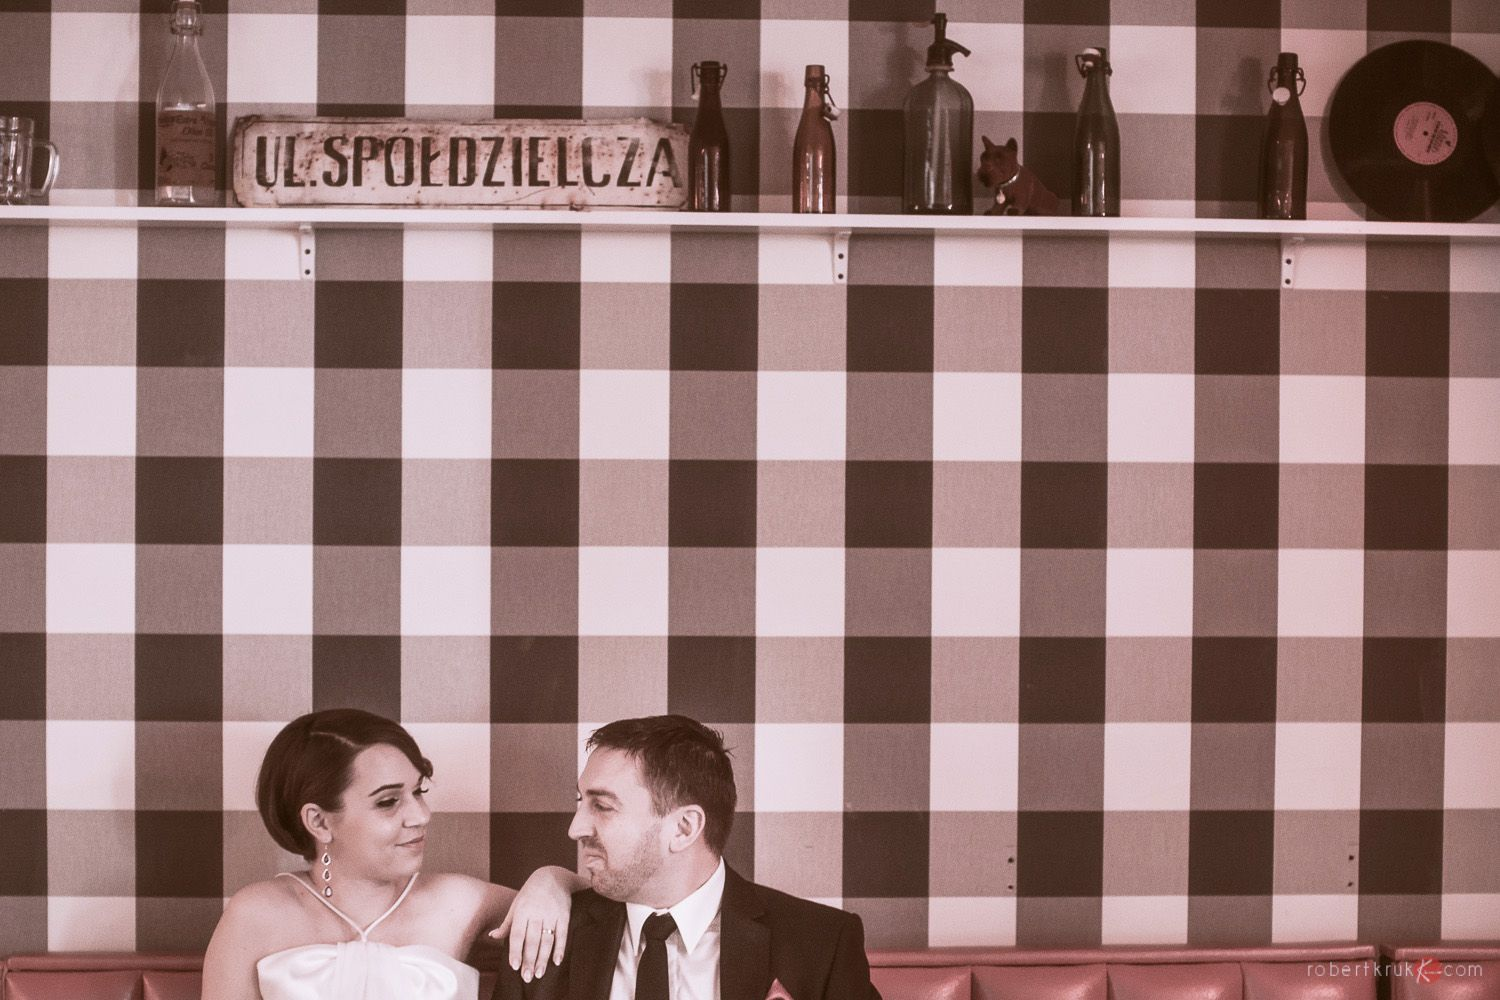 Free Image Hosting at www.ImageShack.us